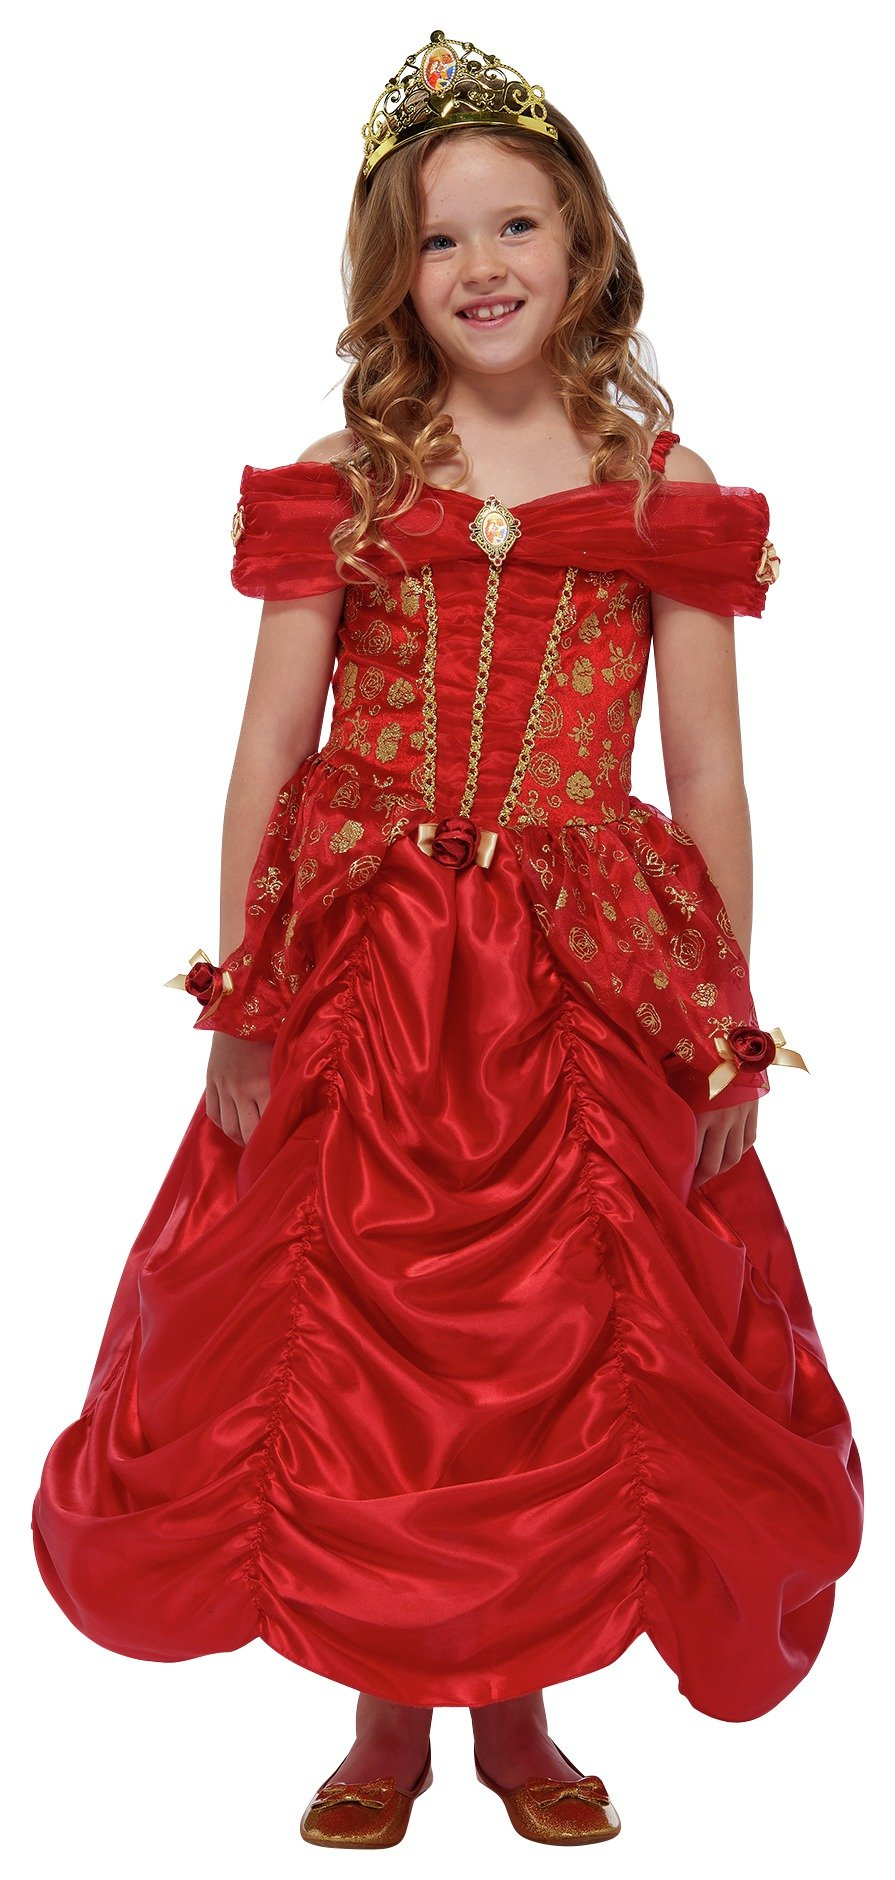 Image of Disney Princess Belle Fancy Dress Costume - 5-6 Years